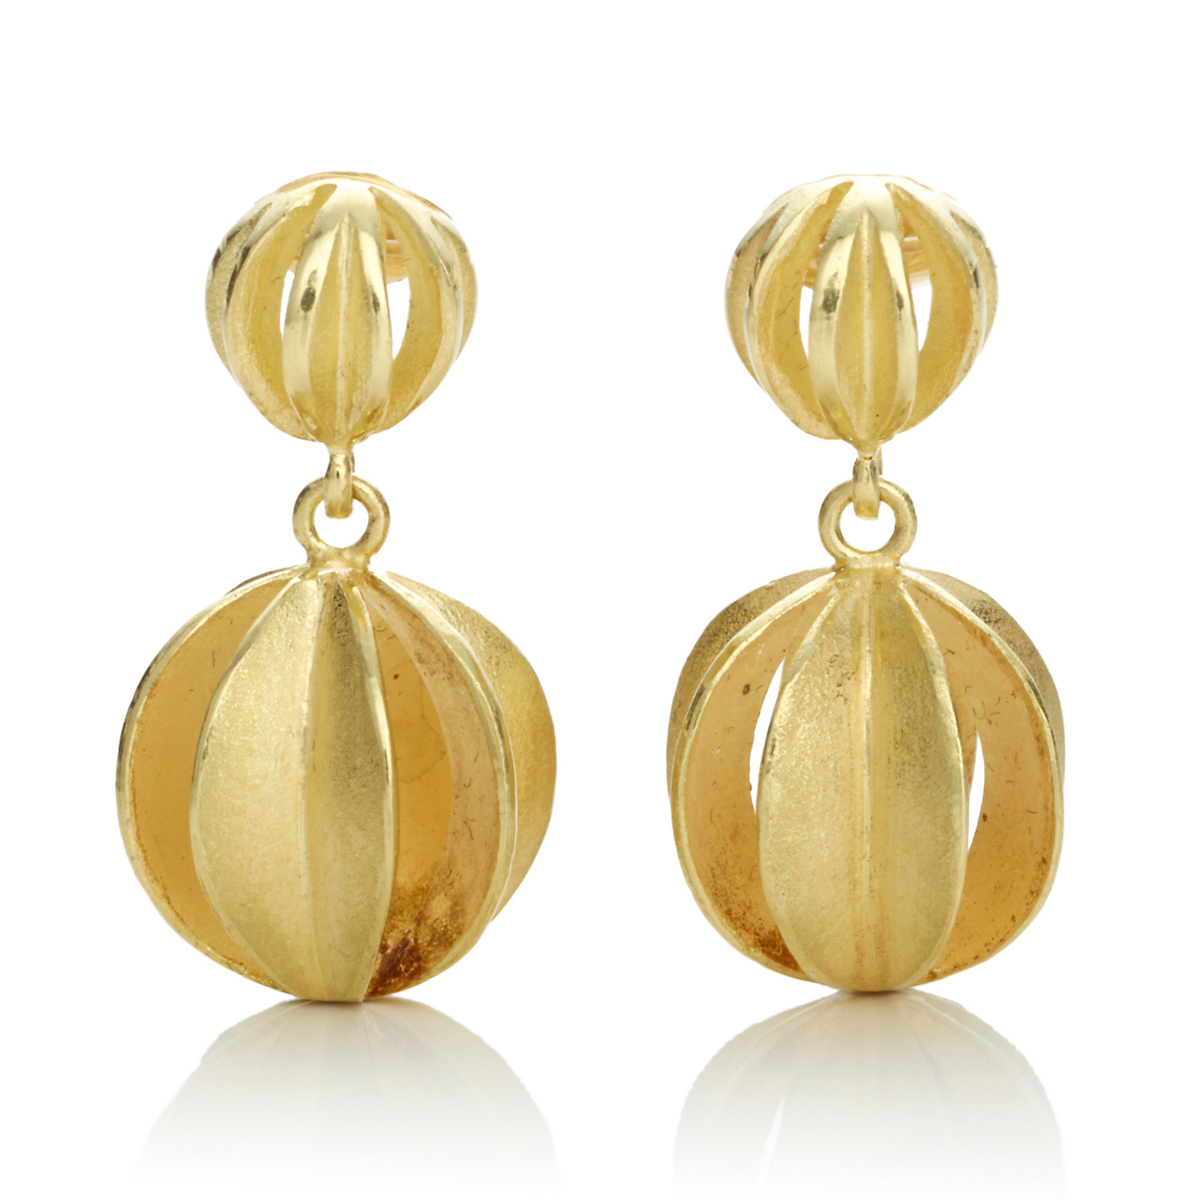 Barbara Heinrich Double Balloon Drop Earrings